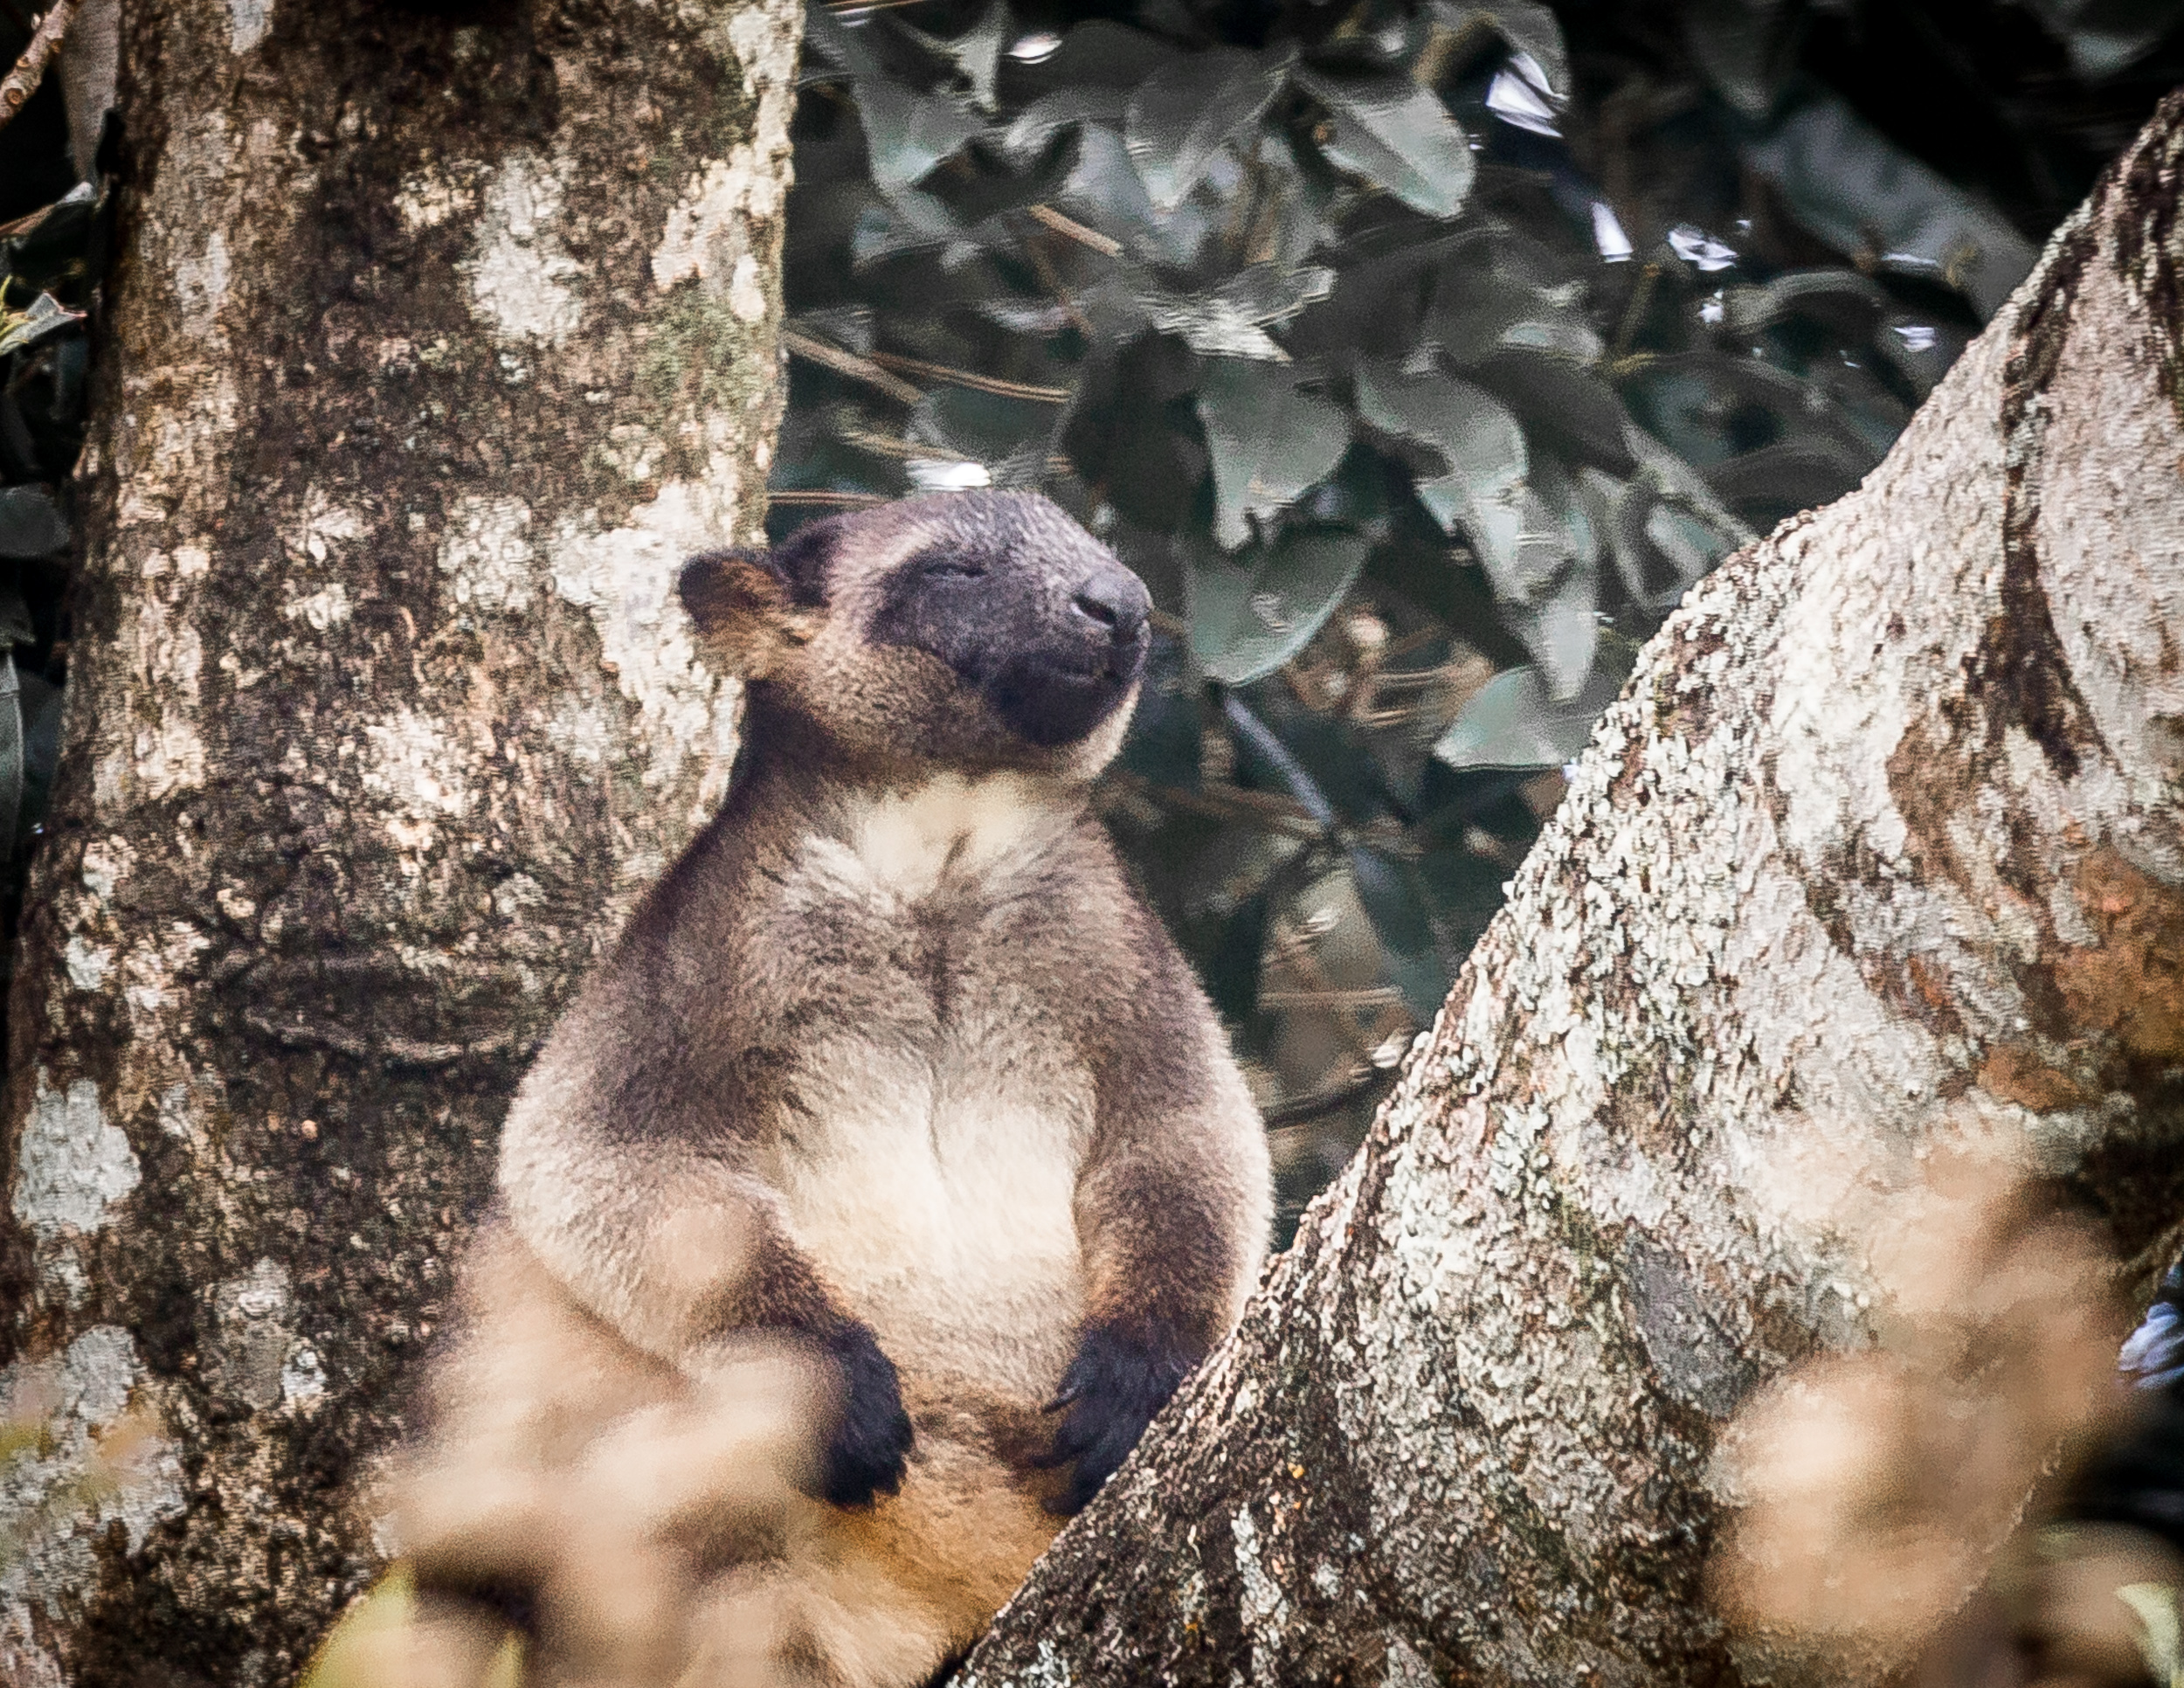 Tree Kangaroo at Nerada Tea Plantation, Atherton Tablelands, Queensland